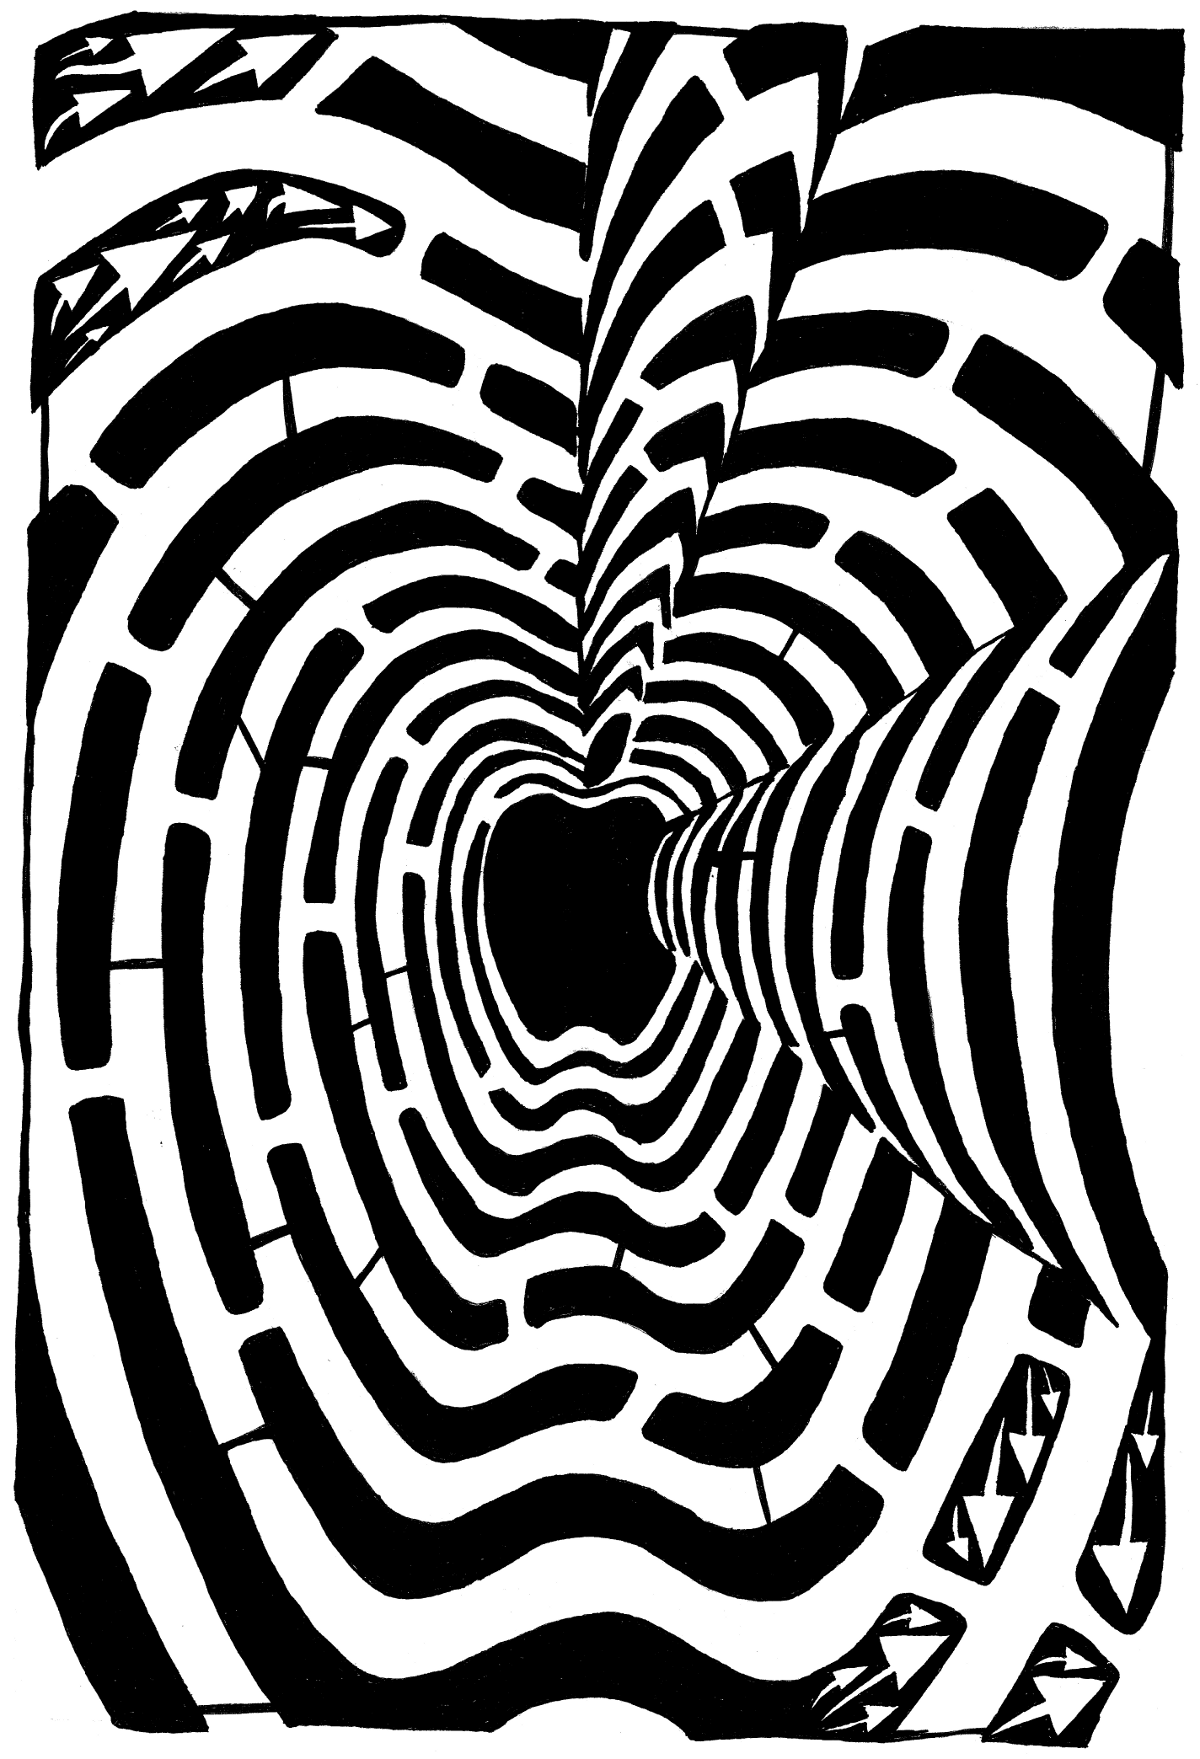 Maze of an Optical Illusion Maze by Yonatan Frimer